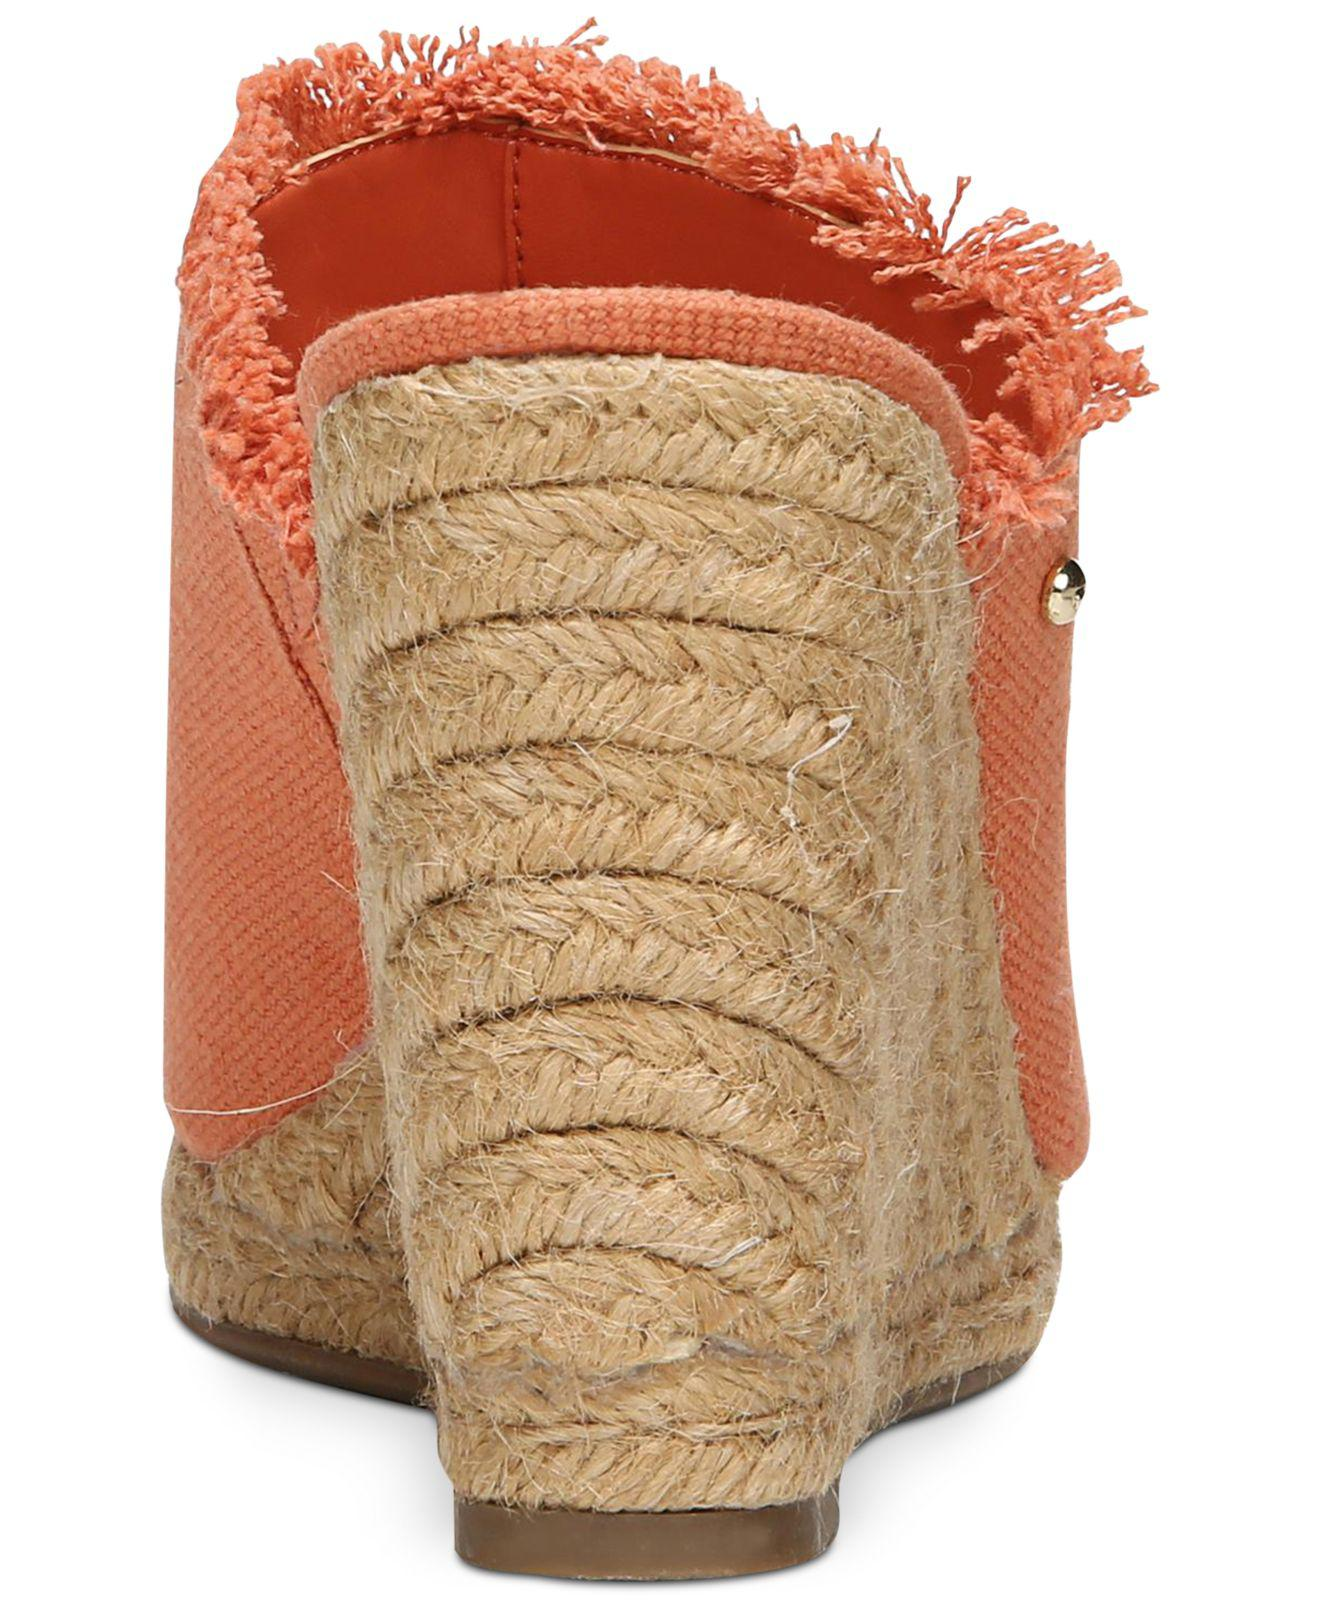 ce0129401509 Lyst - Circus by Sam Edelman Baker Wedges in Orange